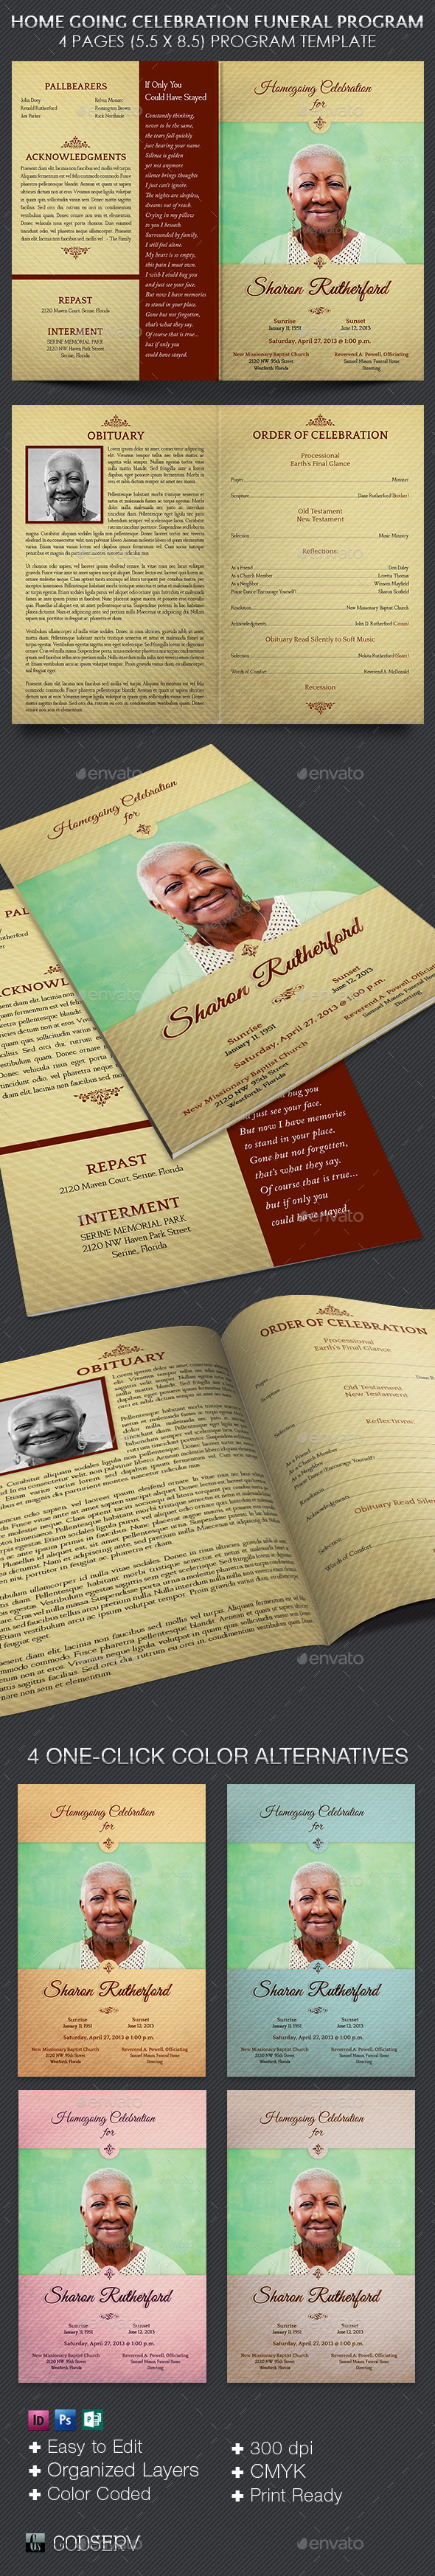 Home Going Funeral Program Template by Godserv – Obituary Program Template